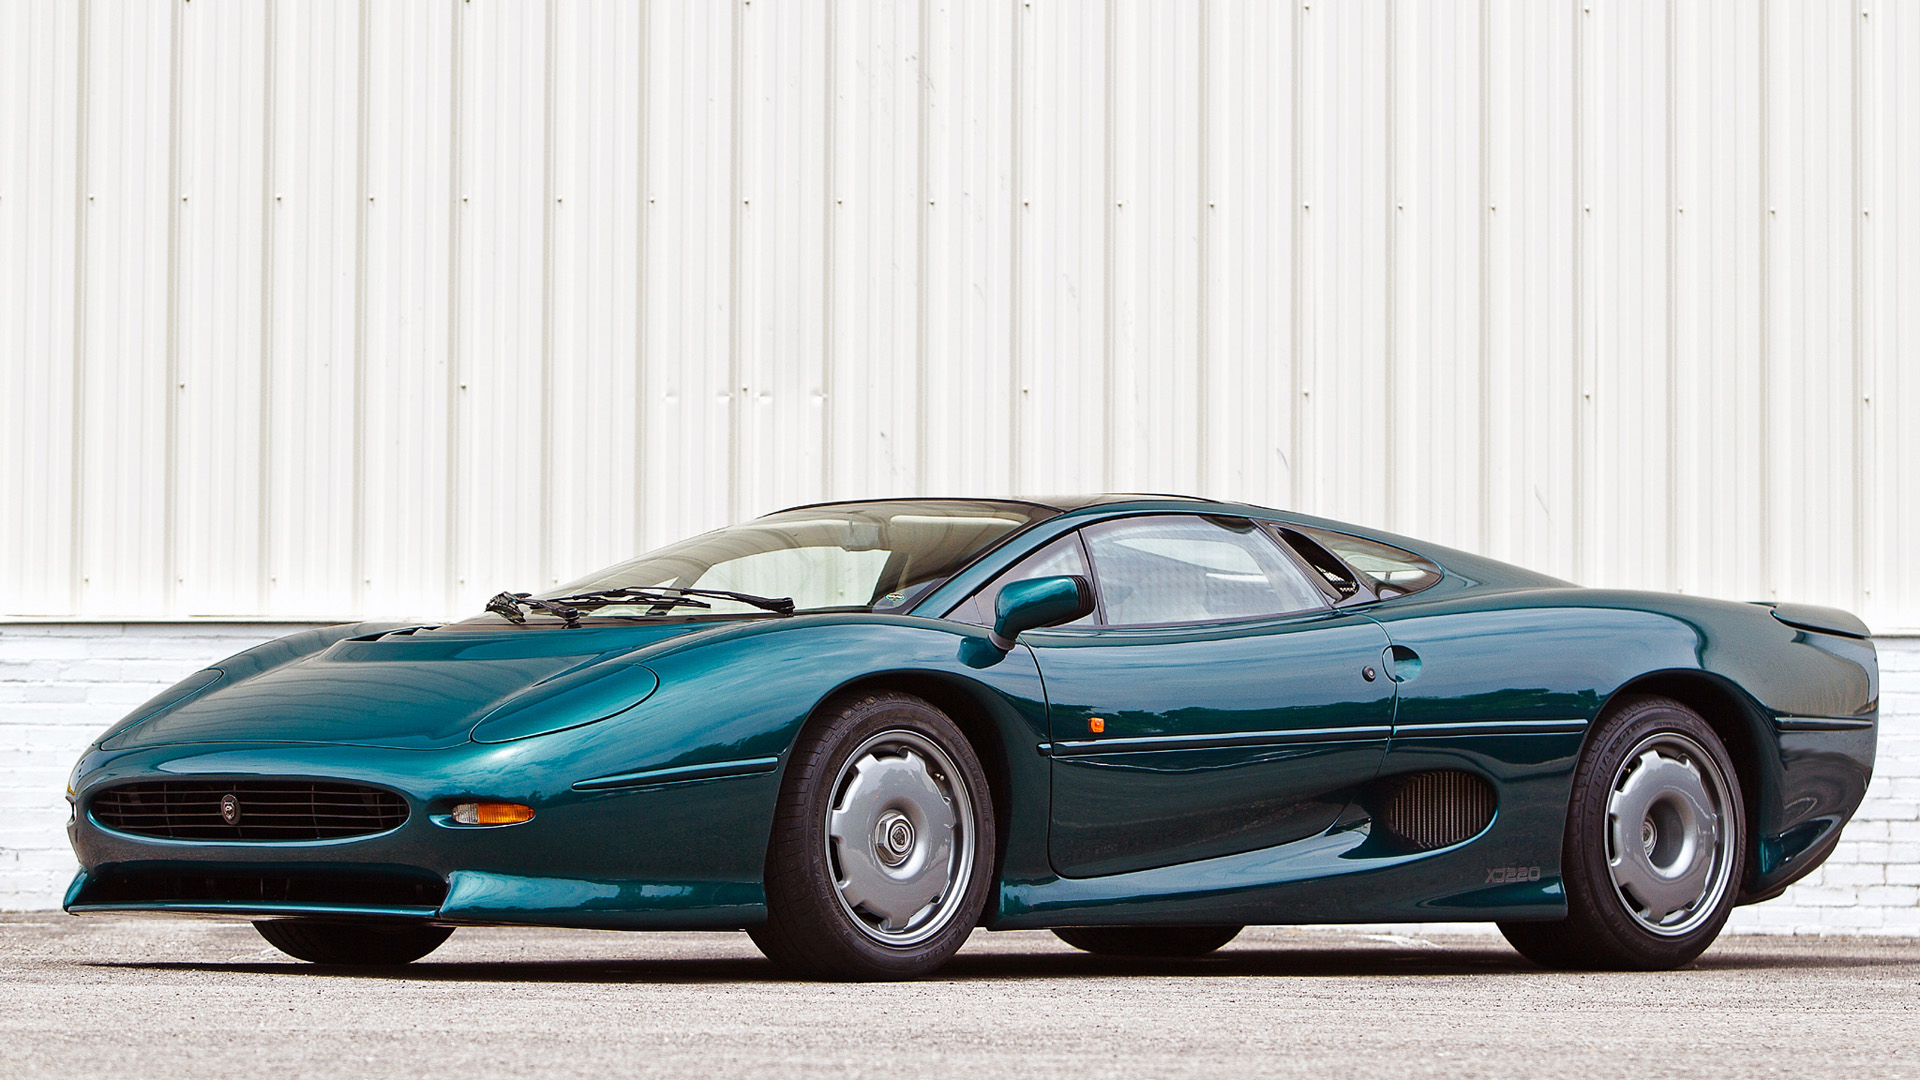 jaguar xj220 with Jaguar Xj220 Gallery on Photos additionally Jaguar XJ220 likewise Gallery also 4 moreover Gallery.